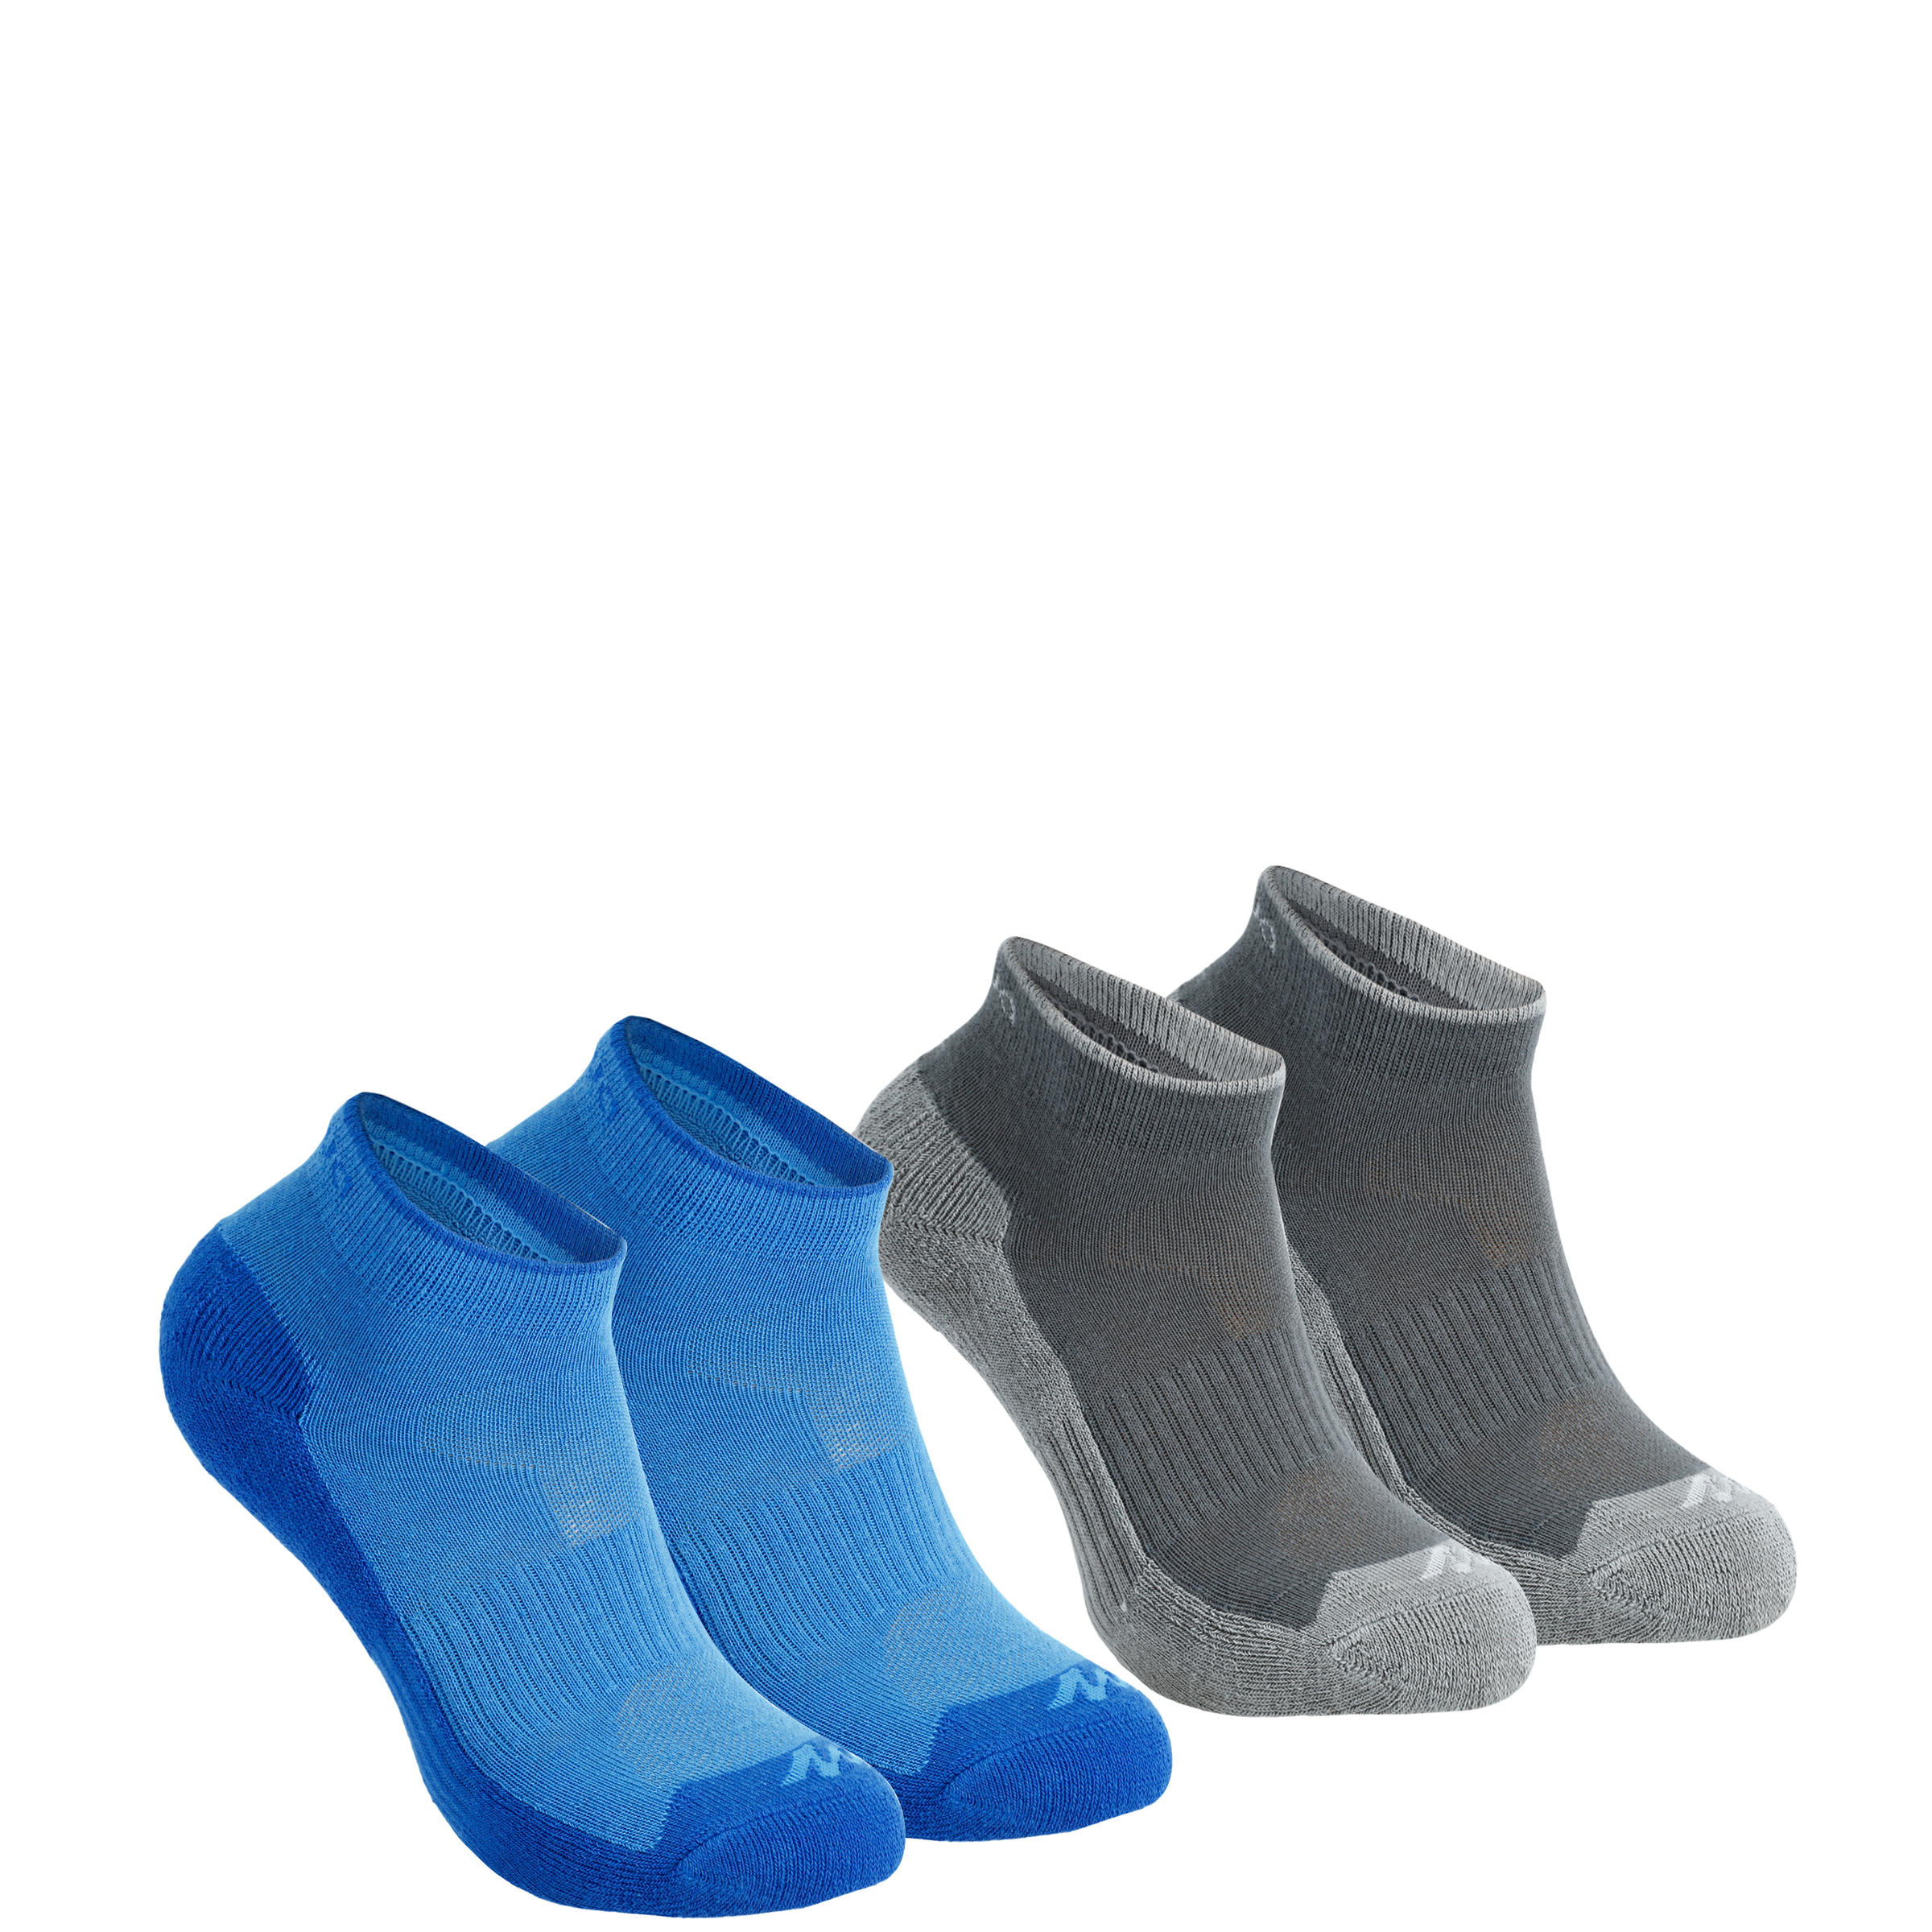 Arpenaz 50 children's mid cut nature hiking socks 2 pairs - blue